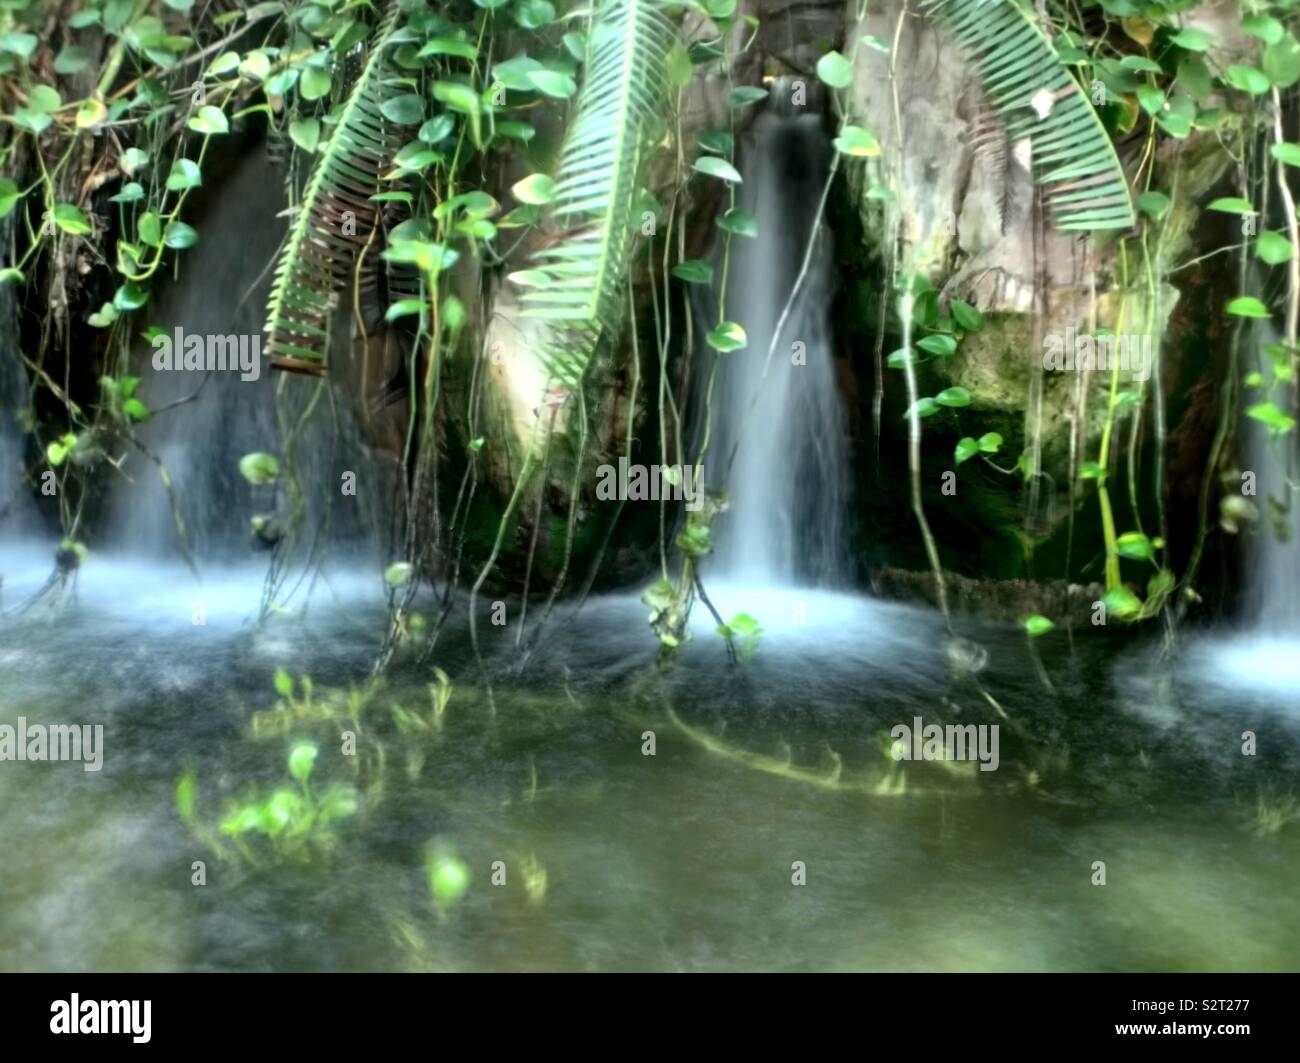 Waterfall at the New Orleans aquarium - Stock Image